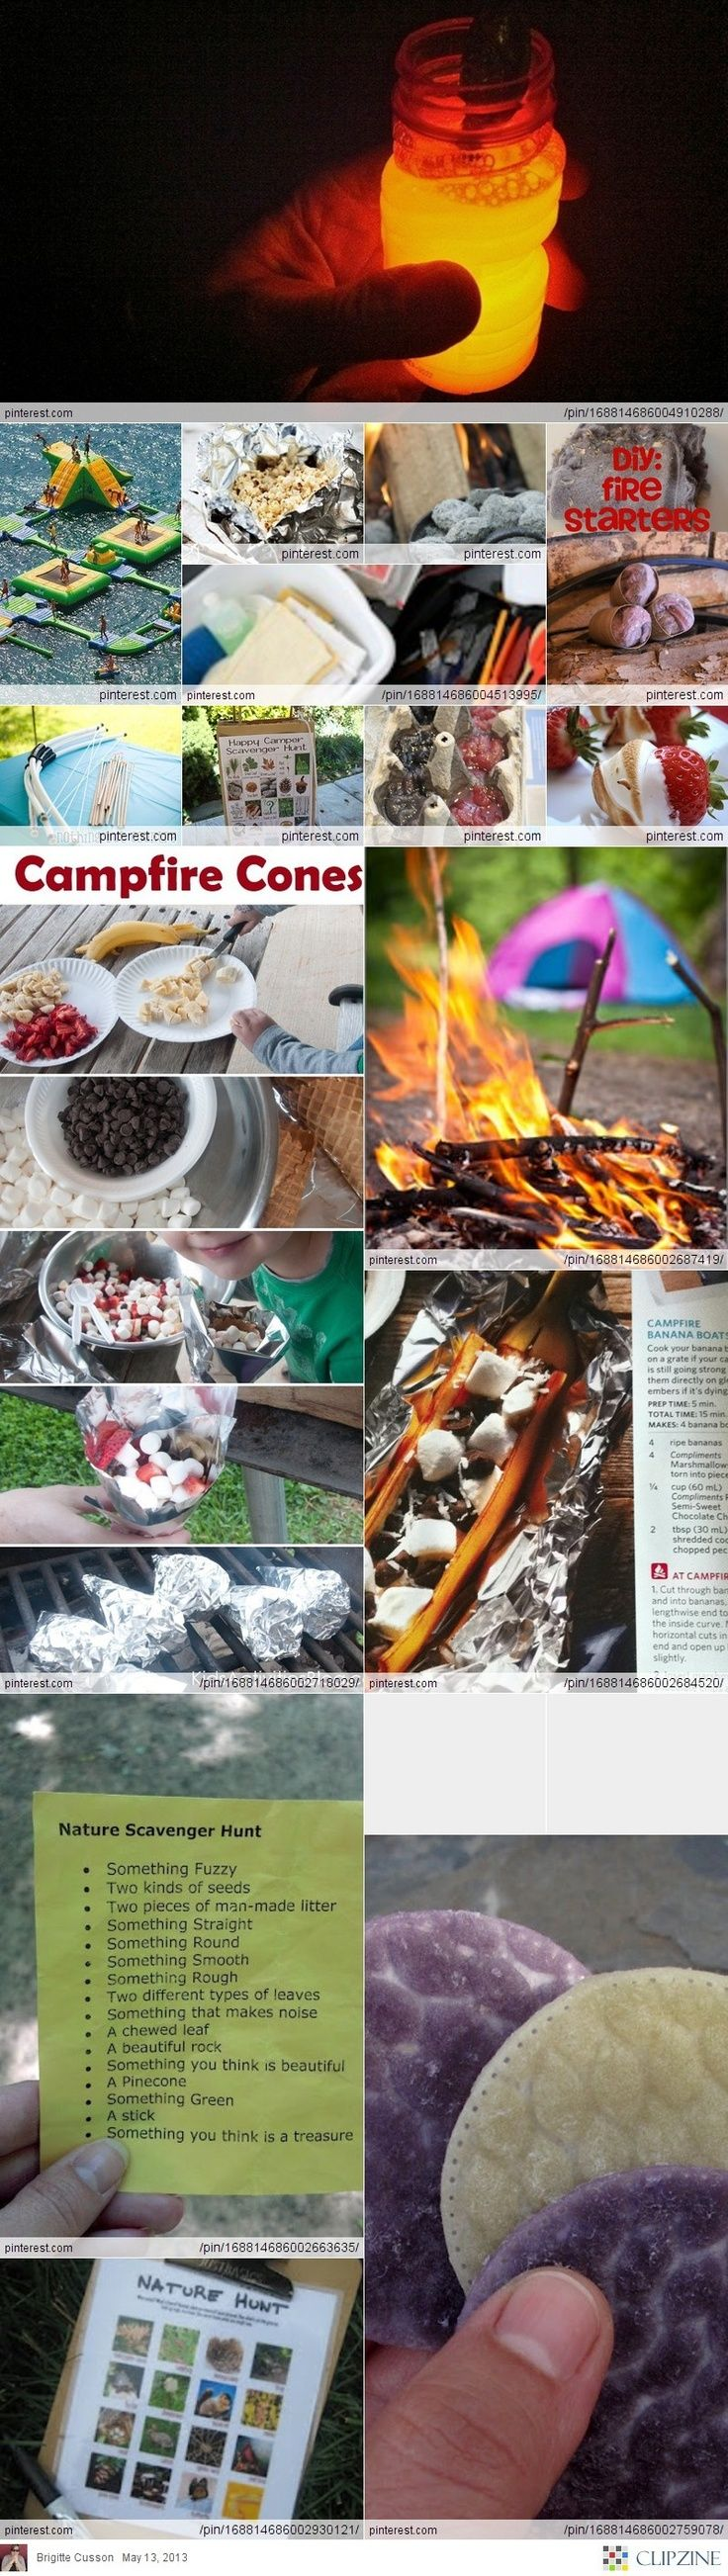 103 best campers images on pinterest family camping camping